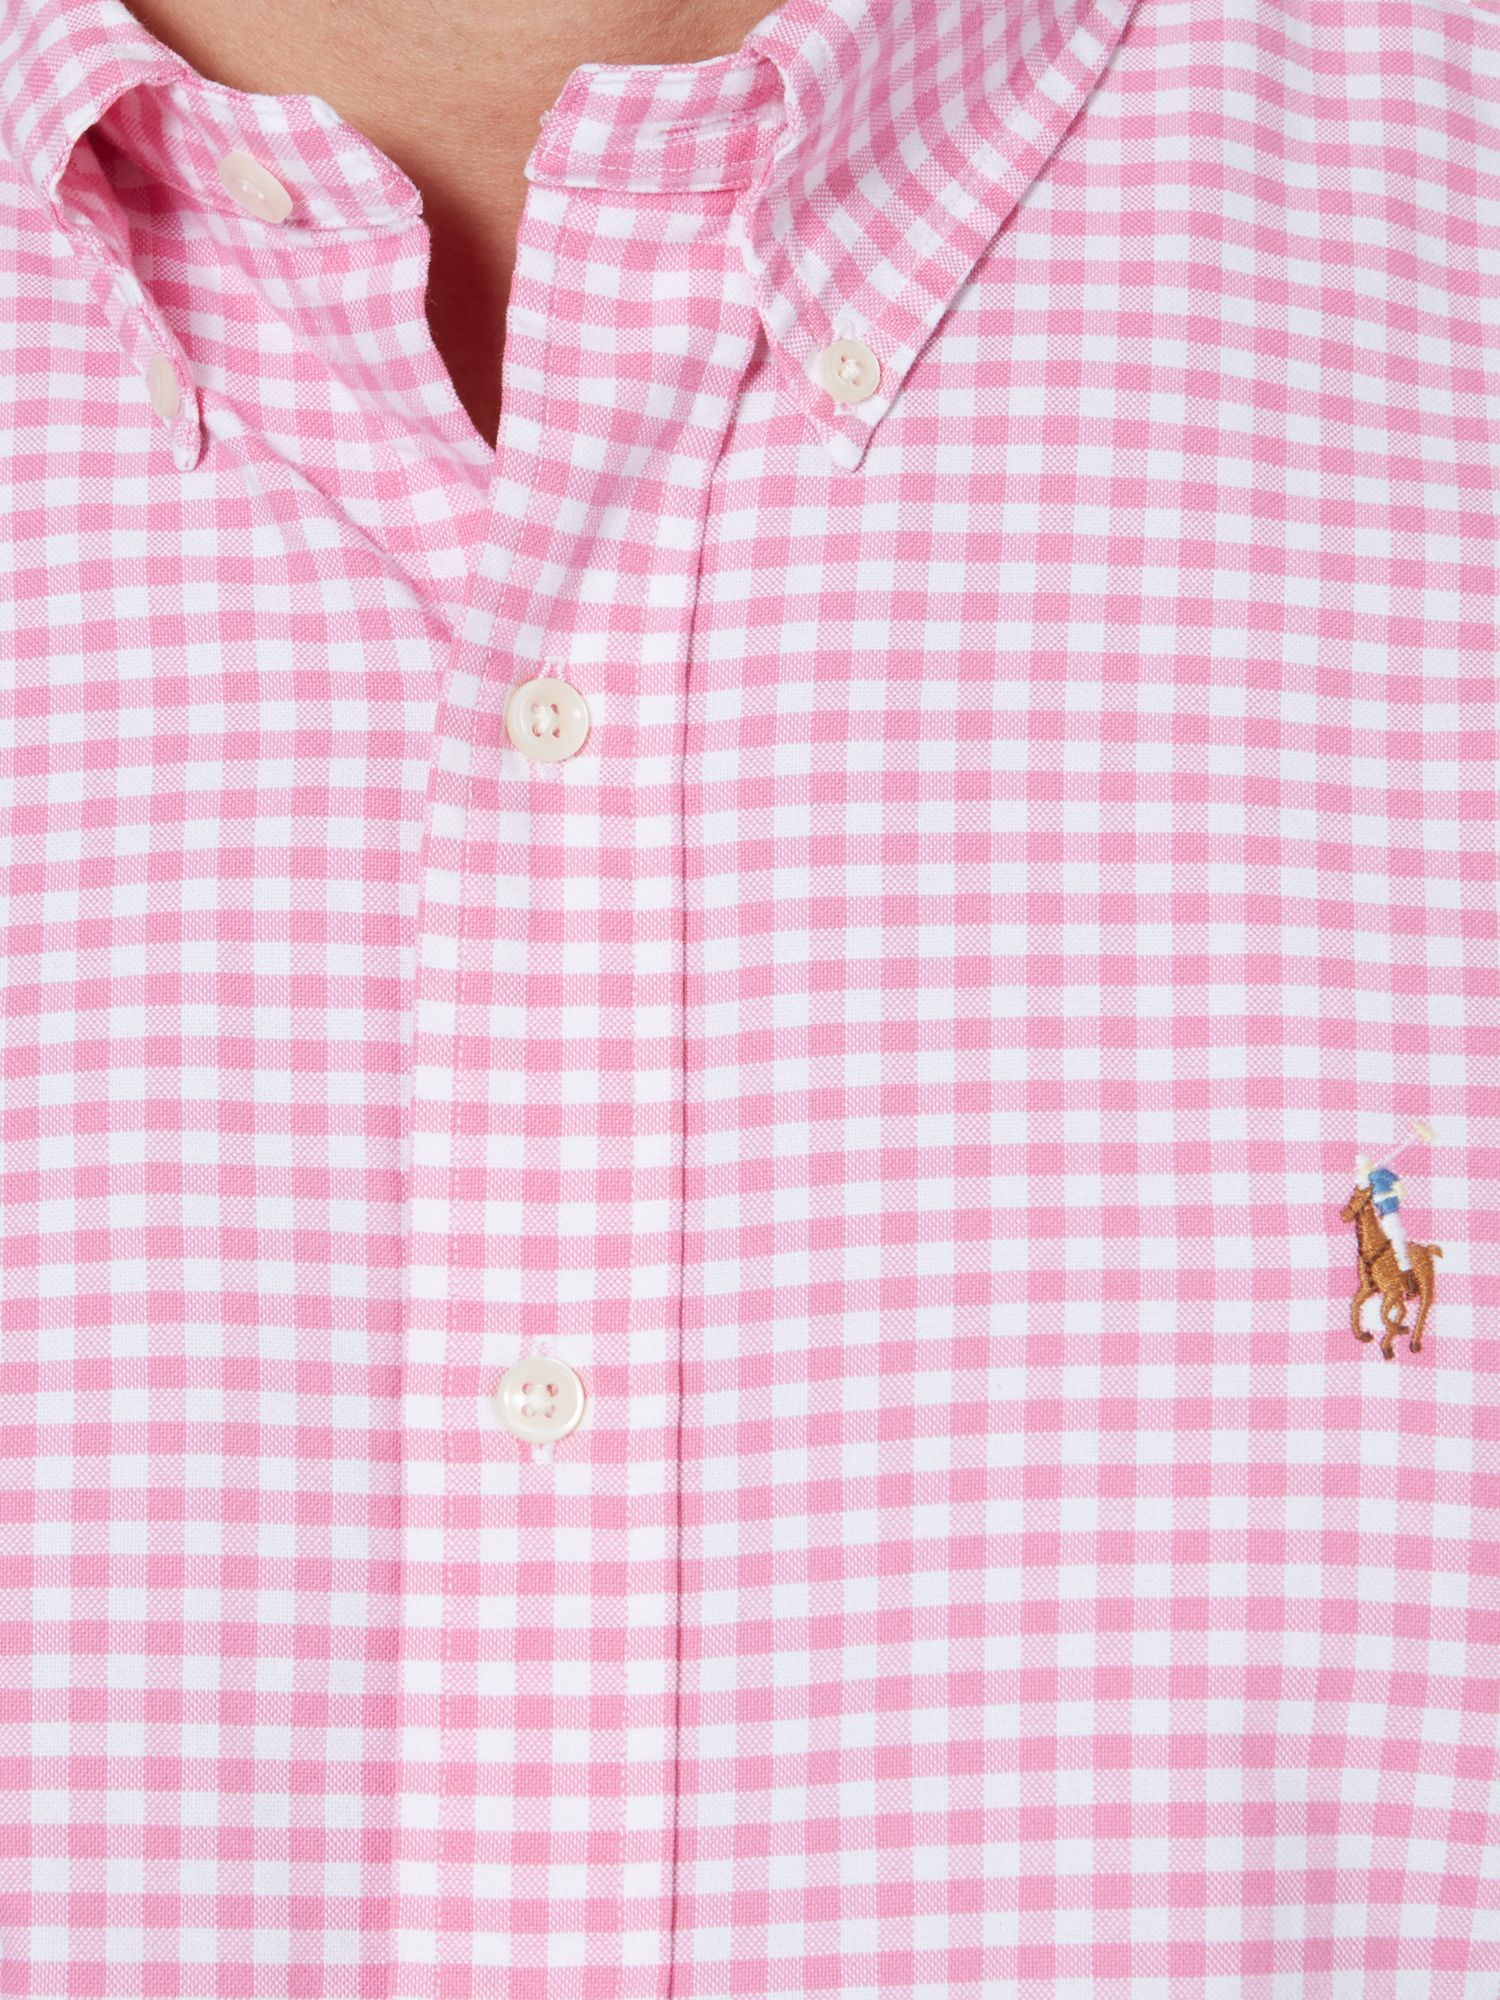 polo ralph lauren classic long sleeve gingham shirt in pink for men lyst. Black Bedroom Furniture Sets. Home Design Ideas